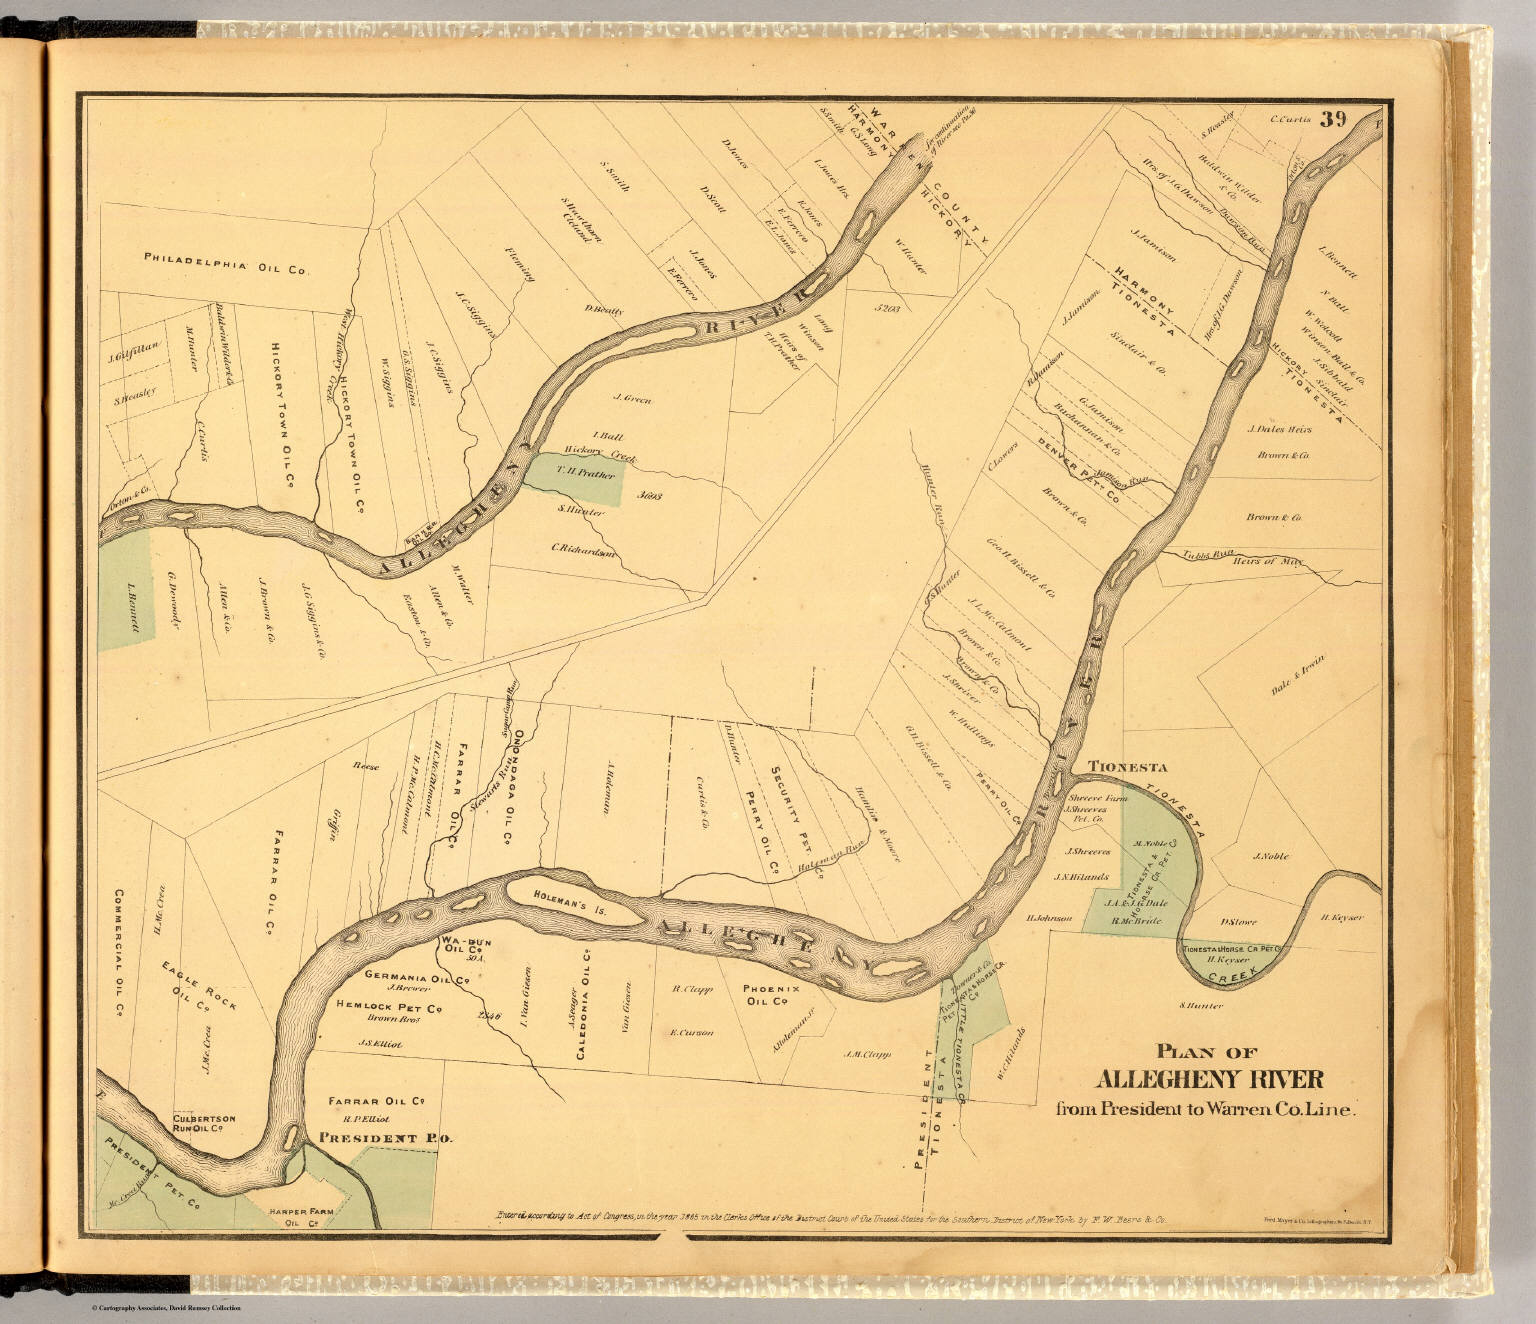 Allegheny River. - David Rumsey Historical Map Collection